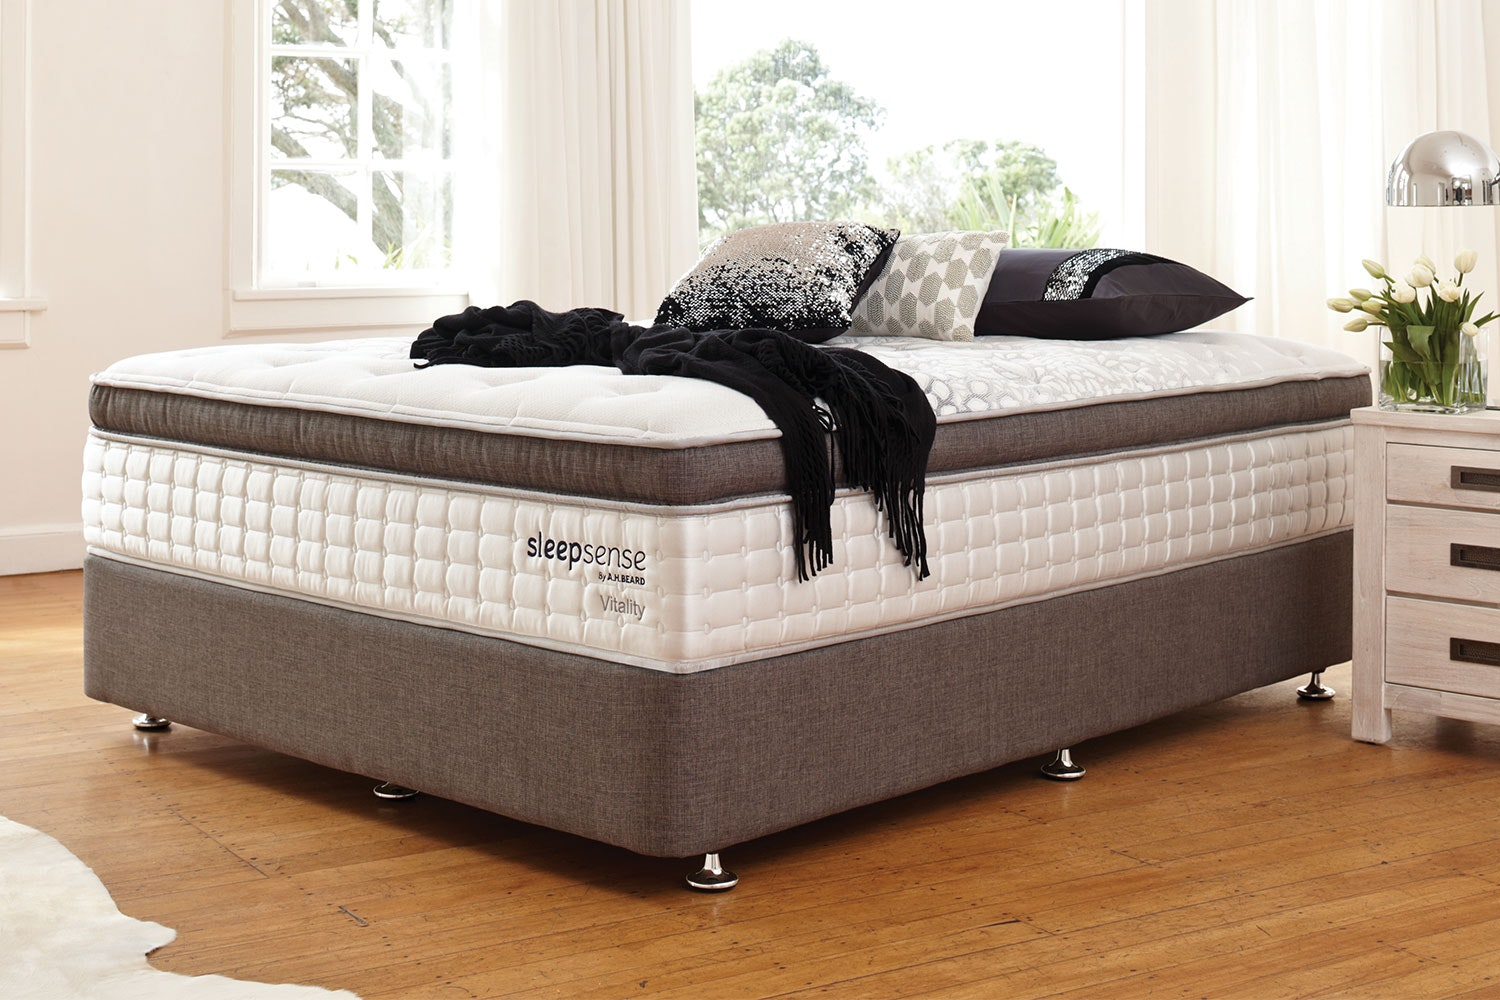 Vitality King Bed by Sleepsense